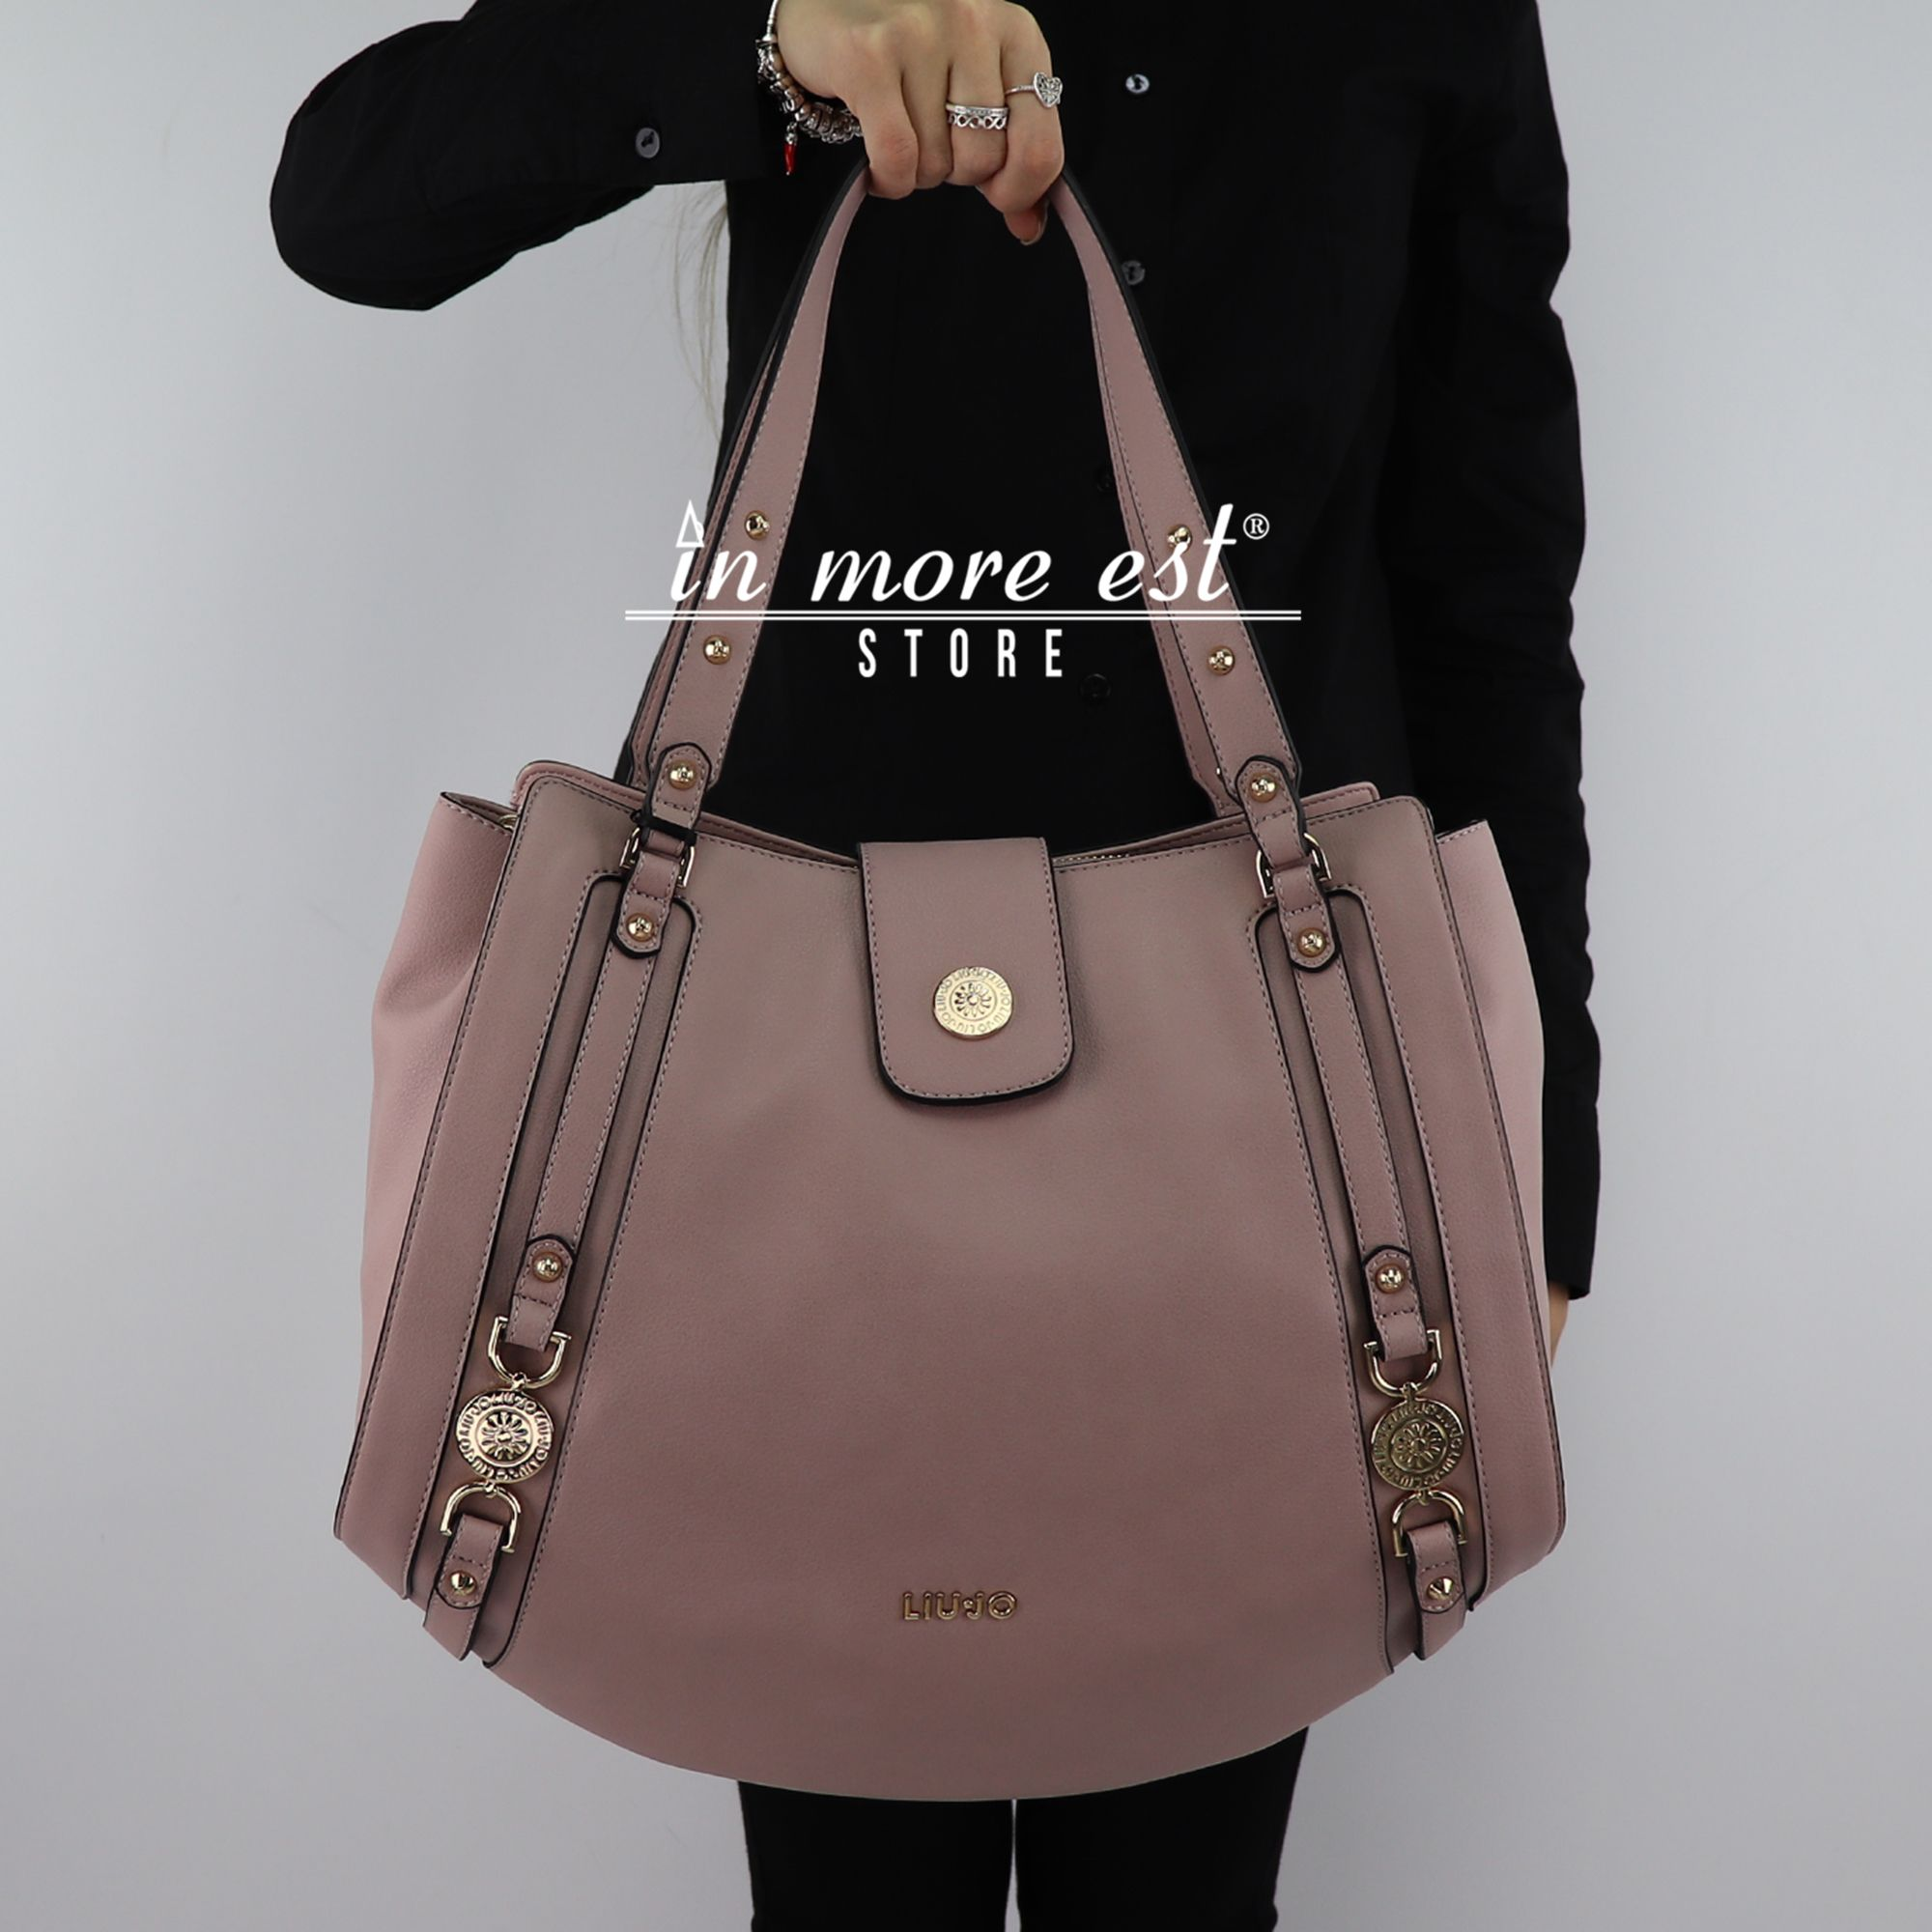 Borsa Liu Jo It s Me Pink Advertising 2018 - In More Est Store d9767aba23c